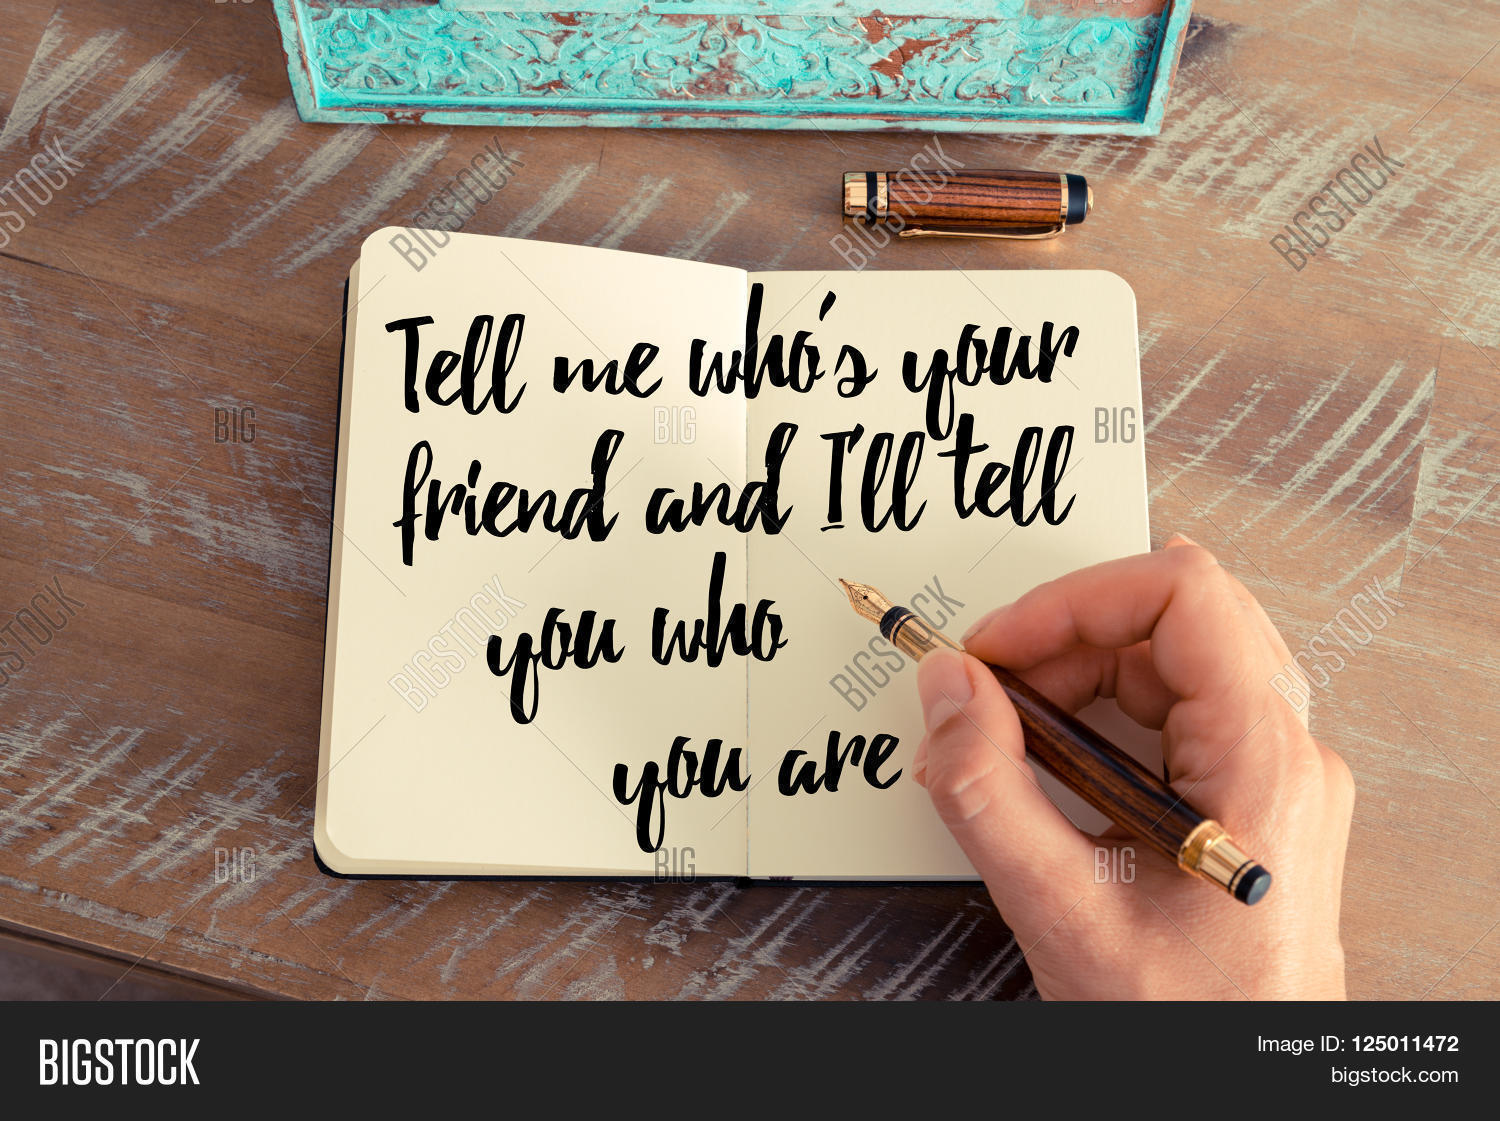 Tell me who is your friend